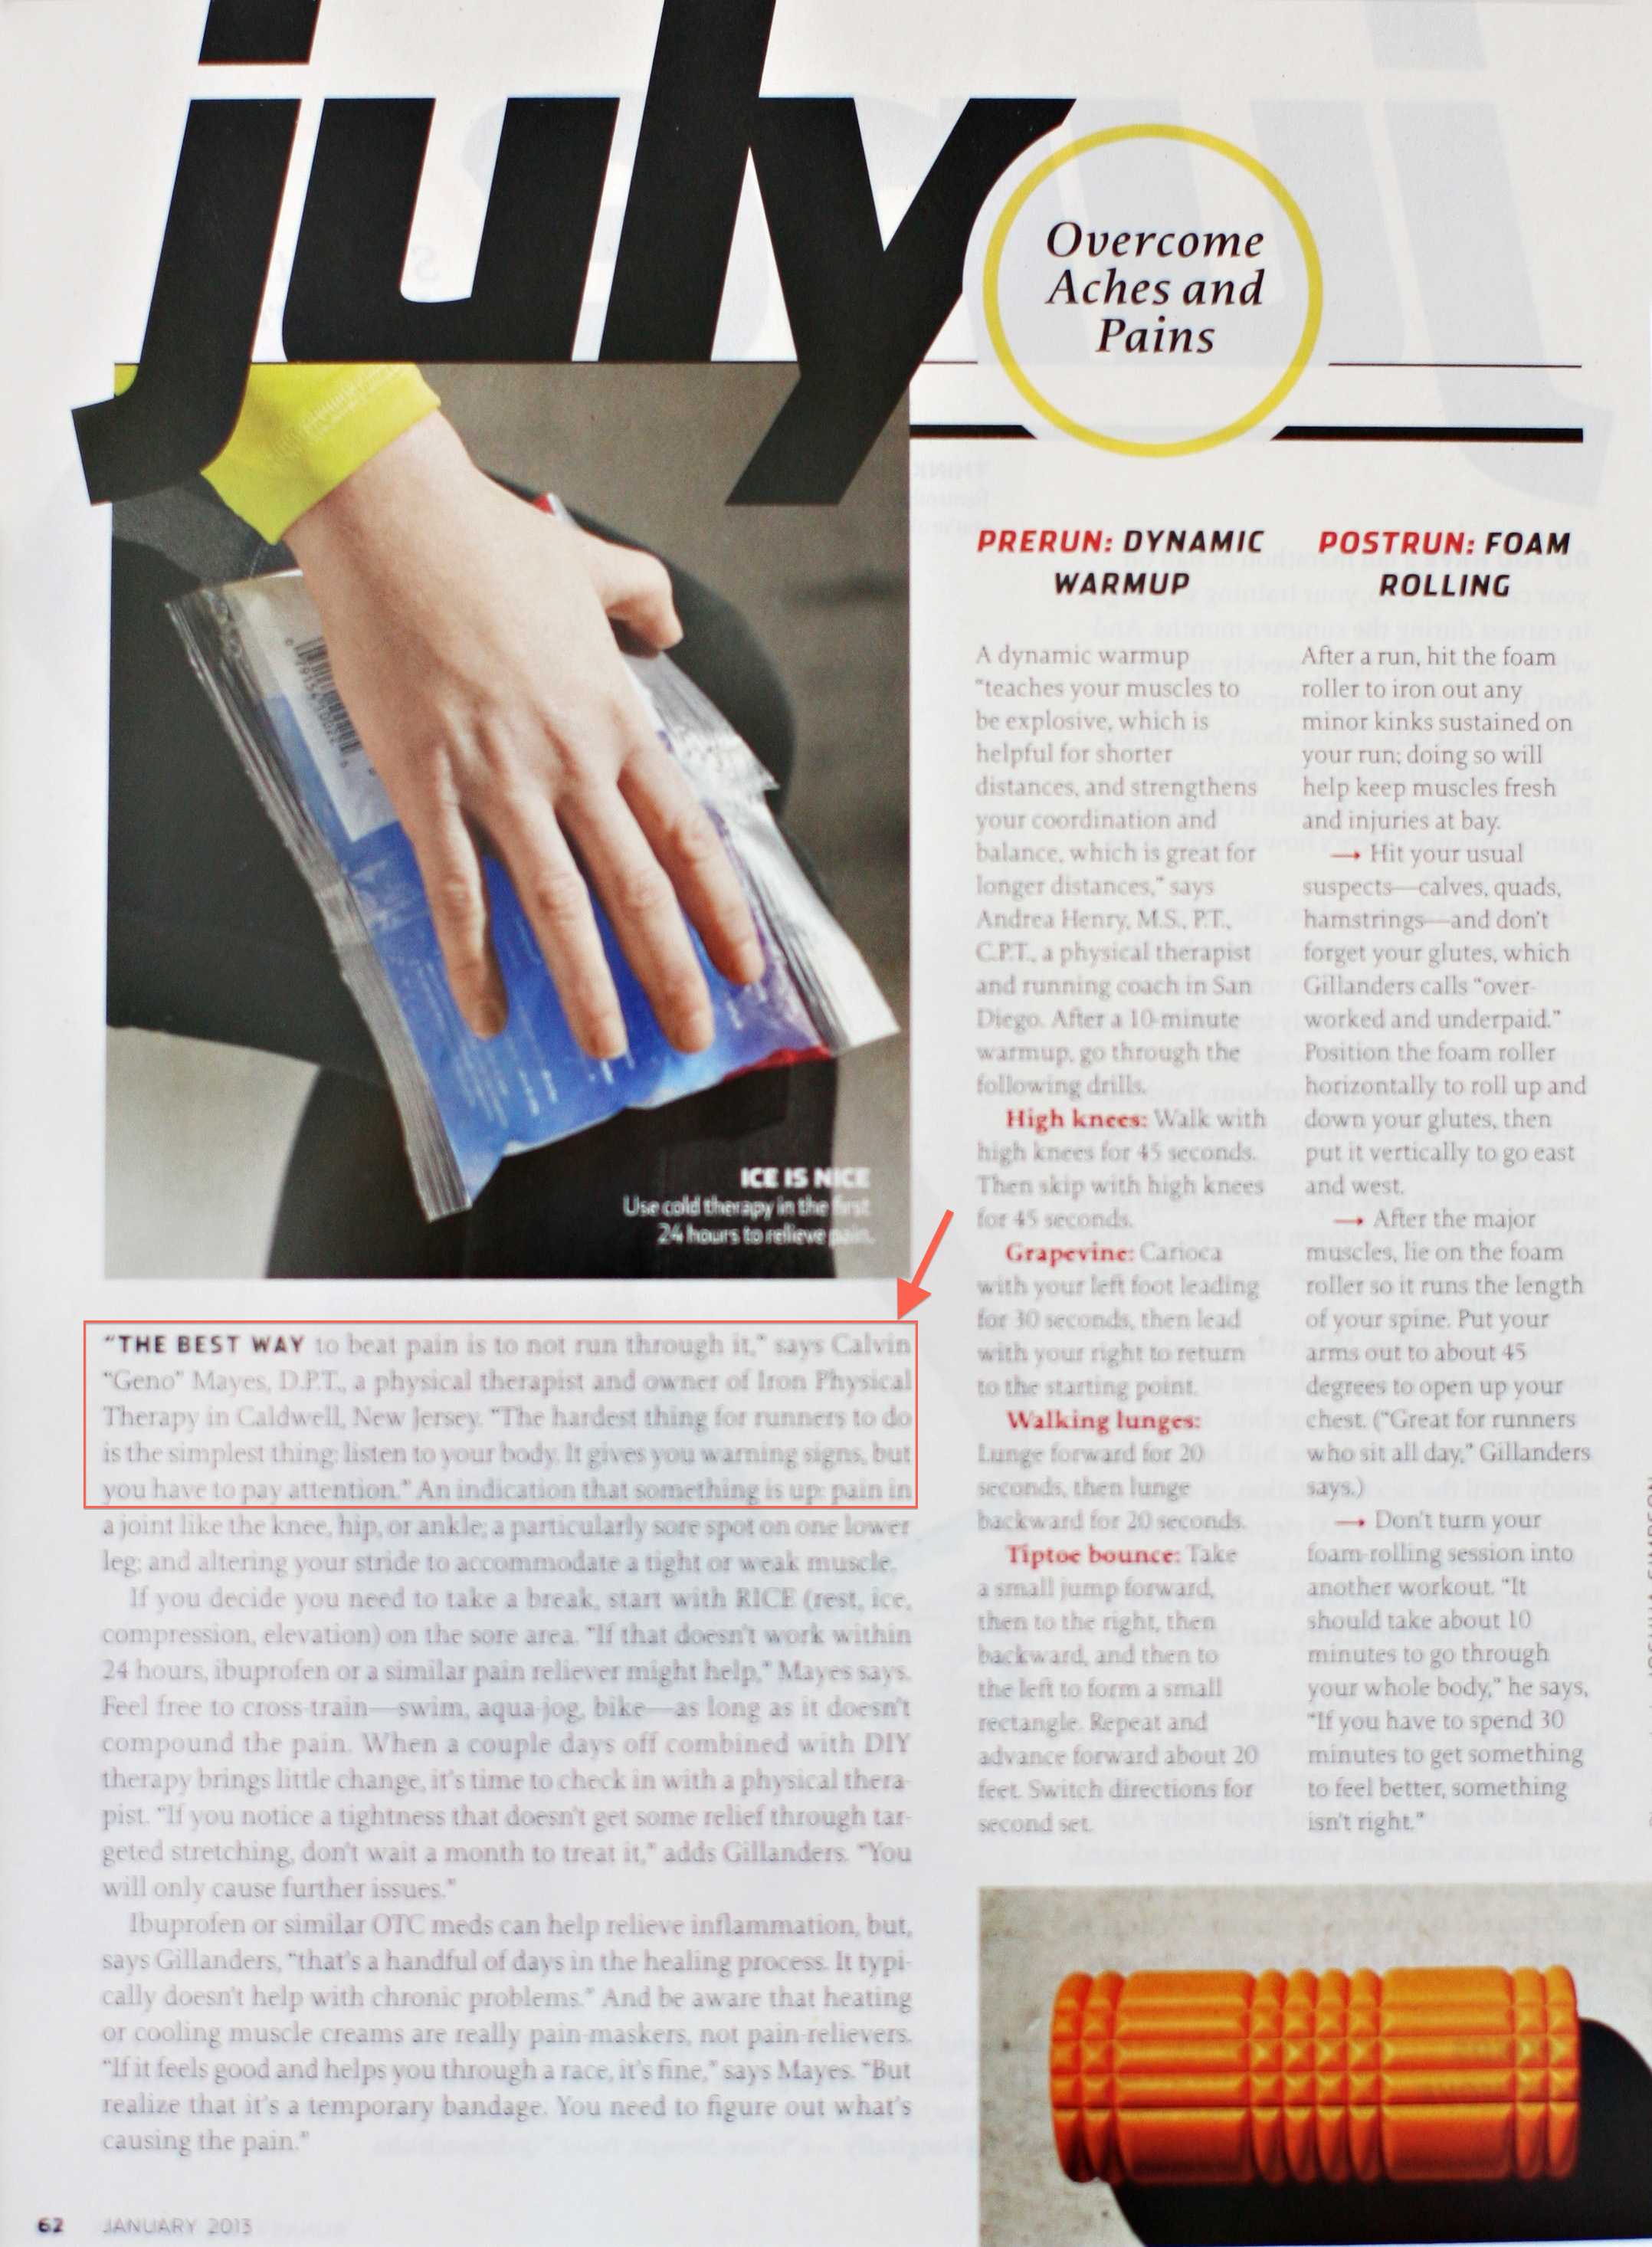 runner's world magazine quotes dr. Mayes on injury prevention